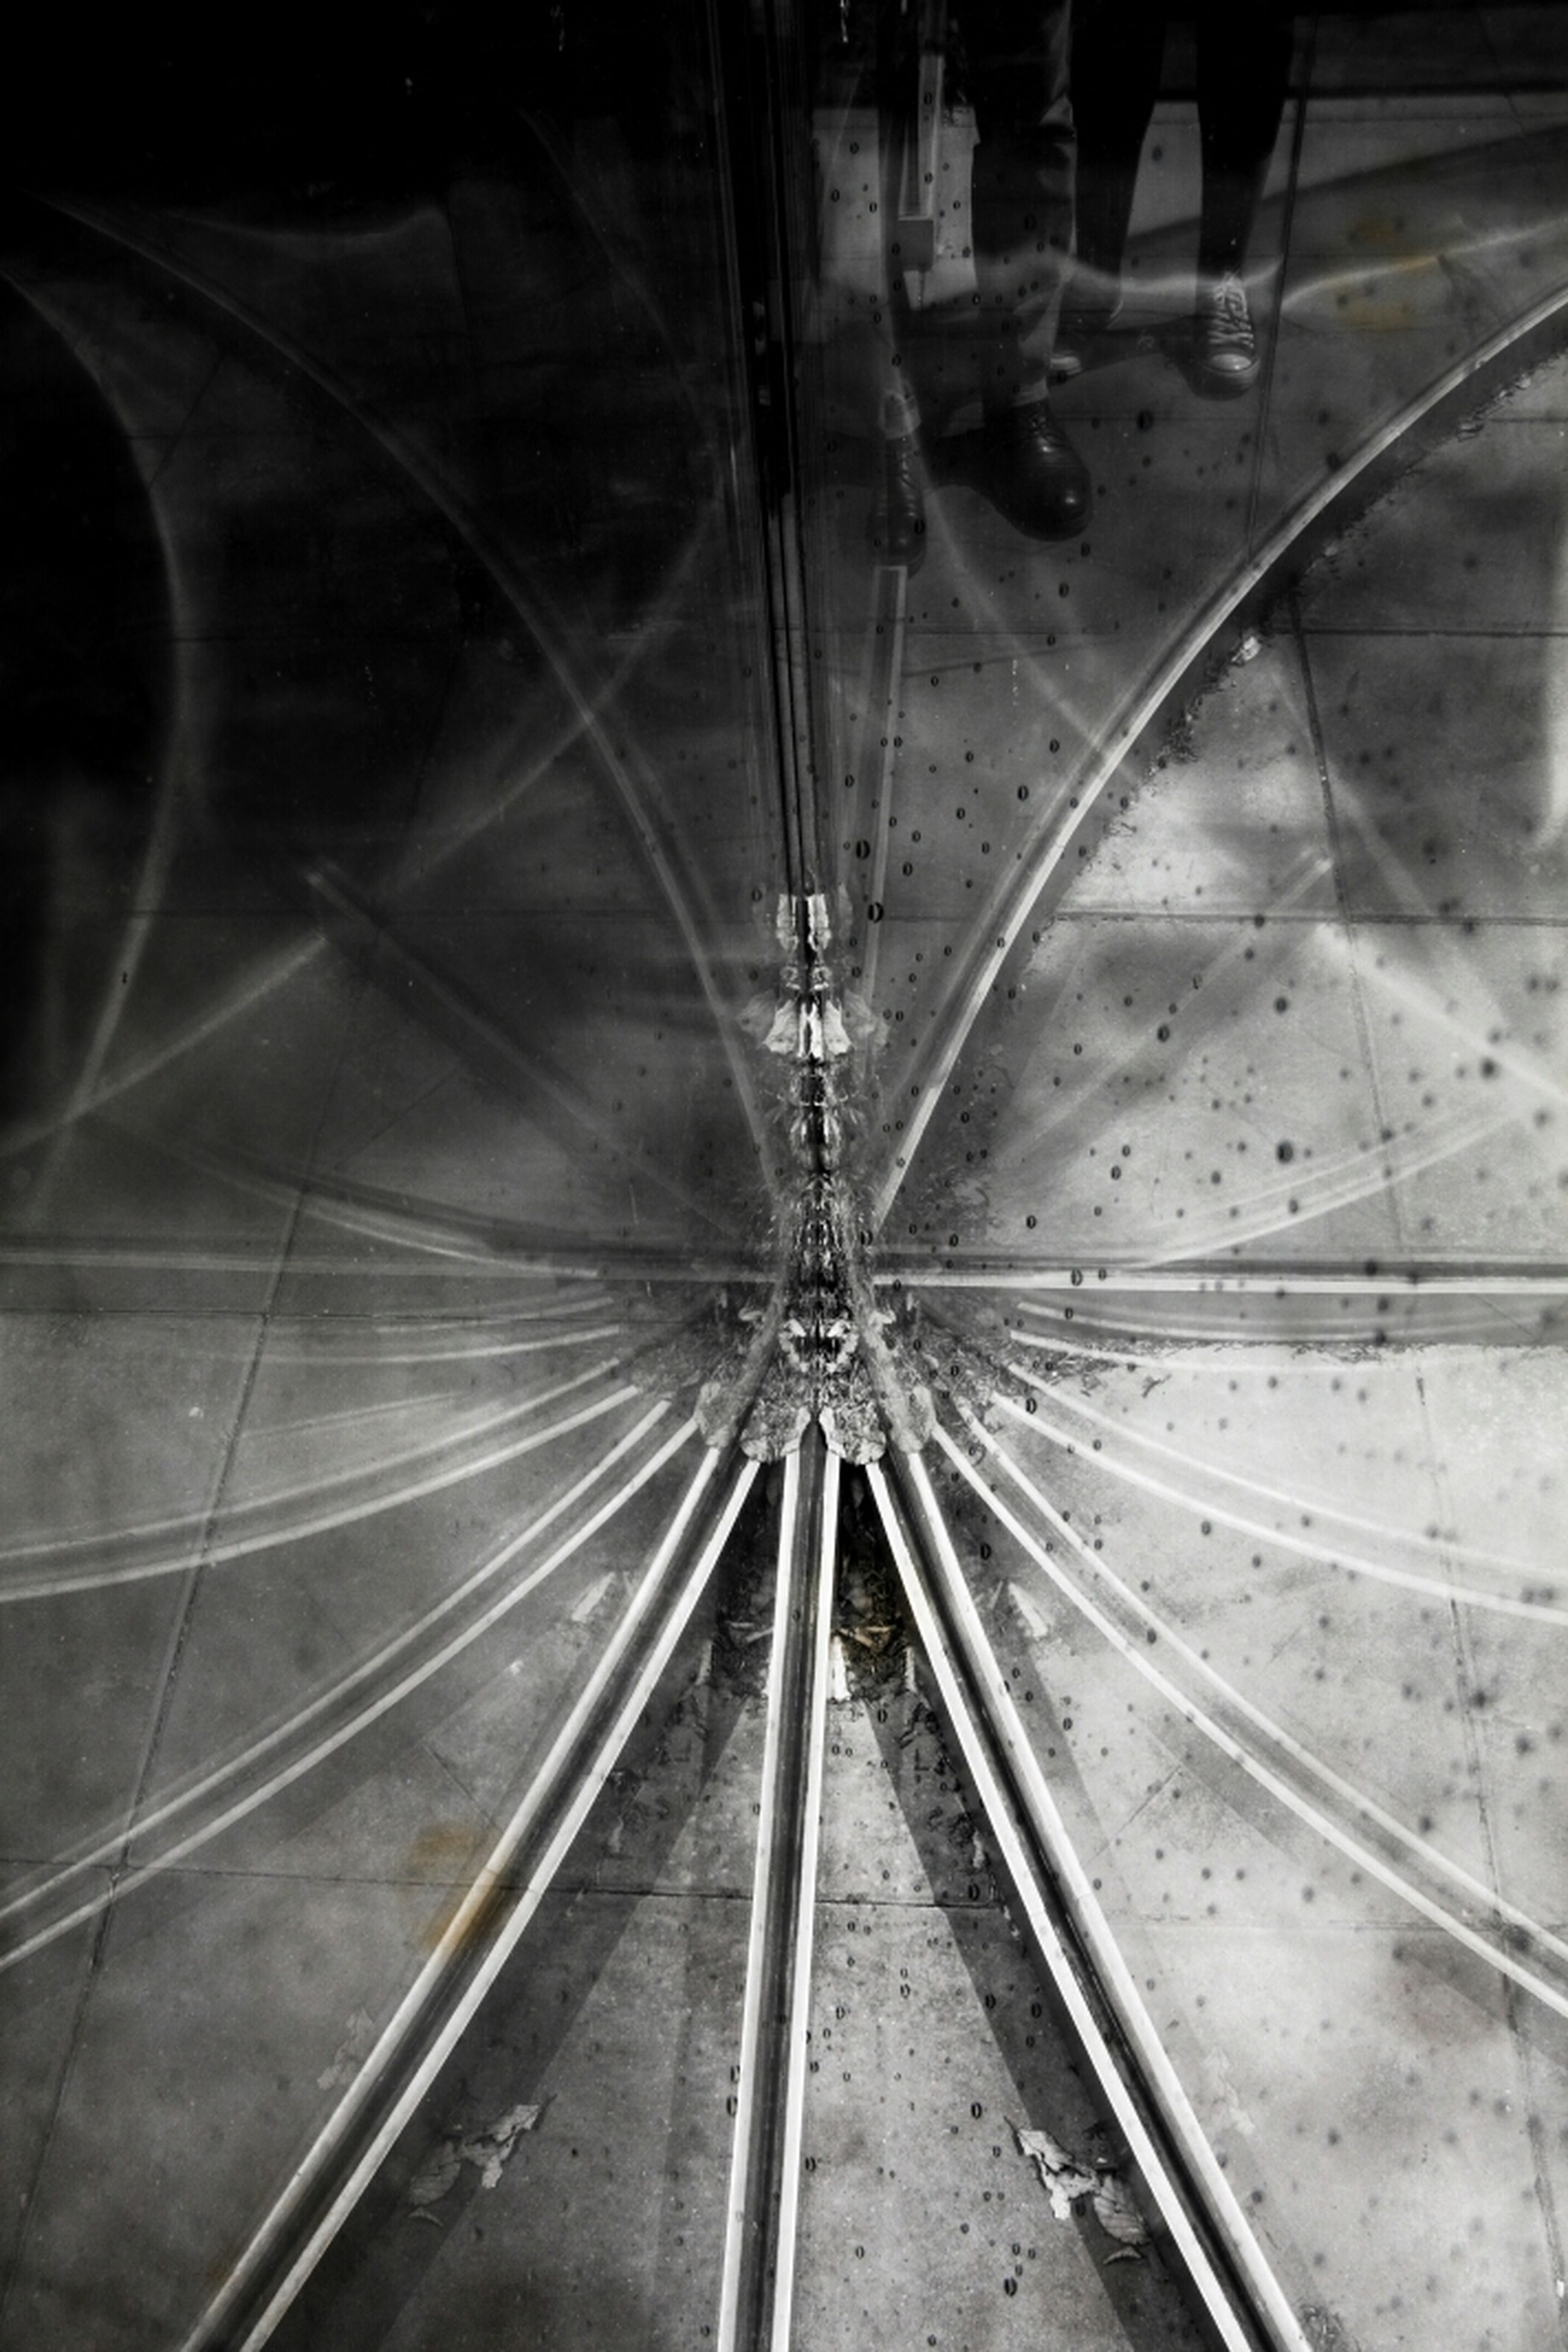 indoors, ceiling, transportation, tunnel, built structure, vanishing point, architecture, pattern, diminishing perspective, railroad track, no people, the way forward, illuminated, low angle view, high angle view, rail transportation, day, umbrella, travel